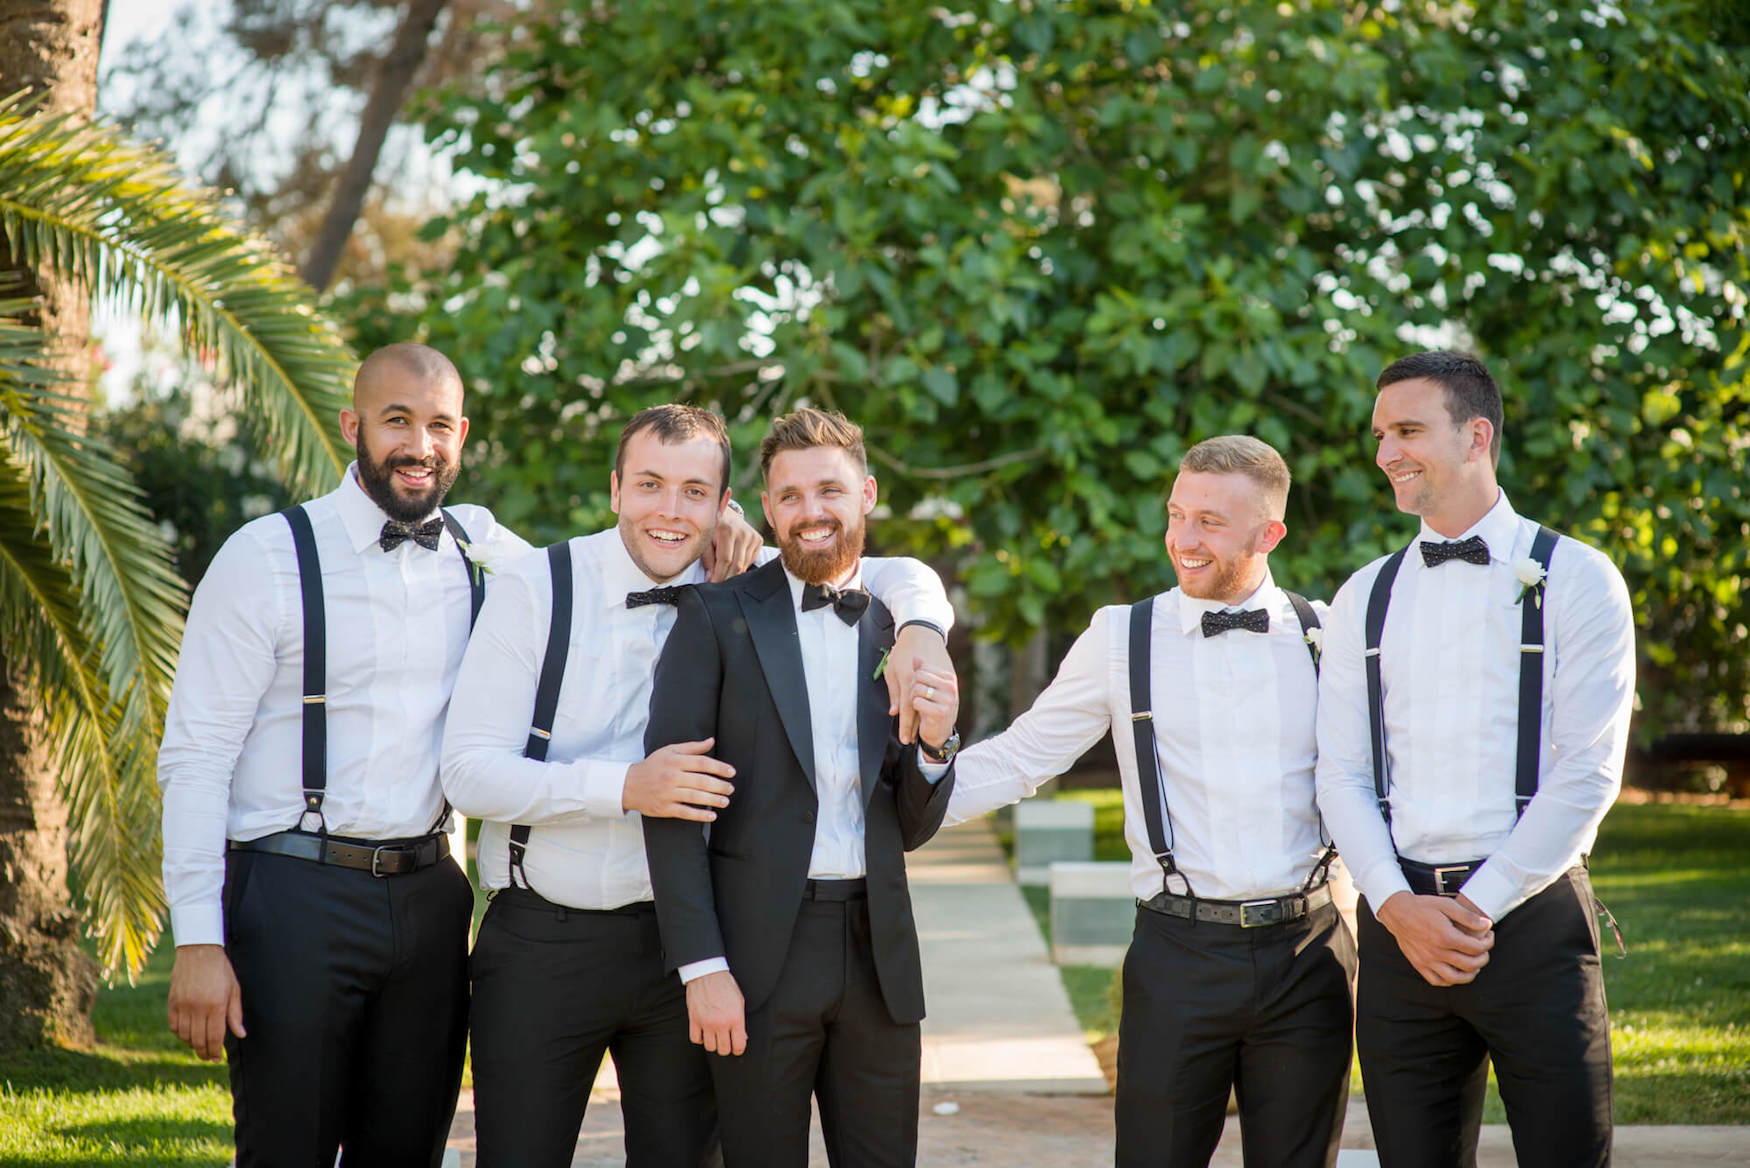 groom groomsmen formal photo black tie